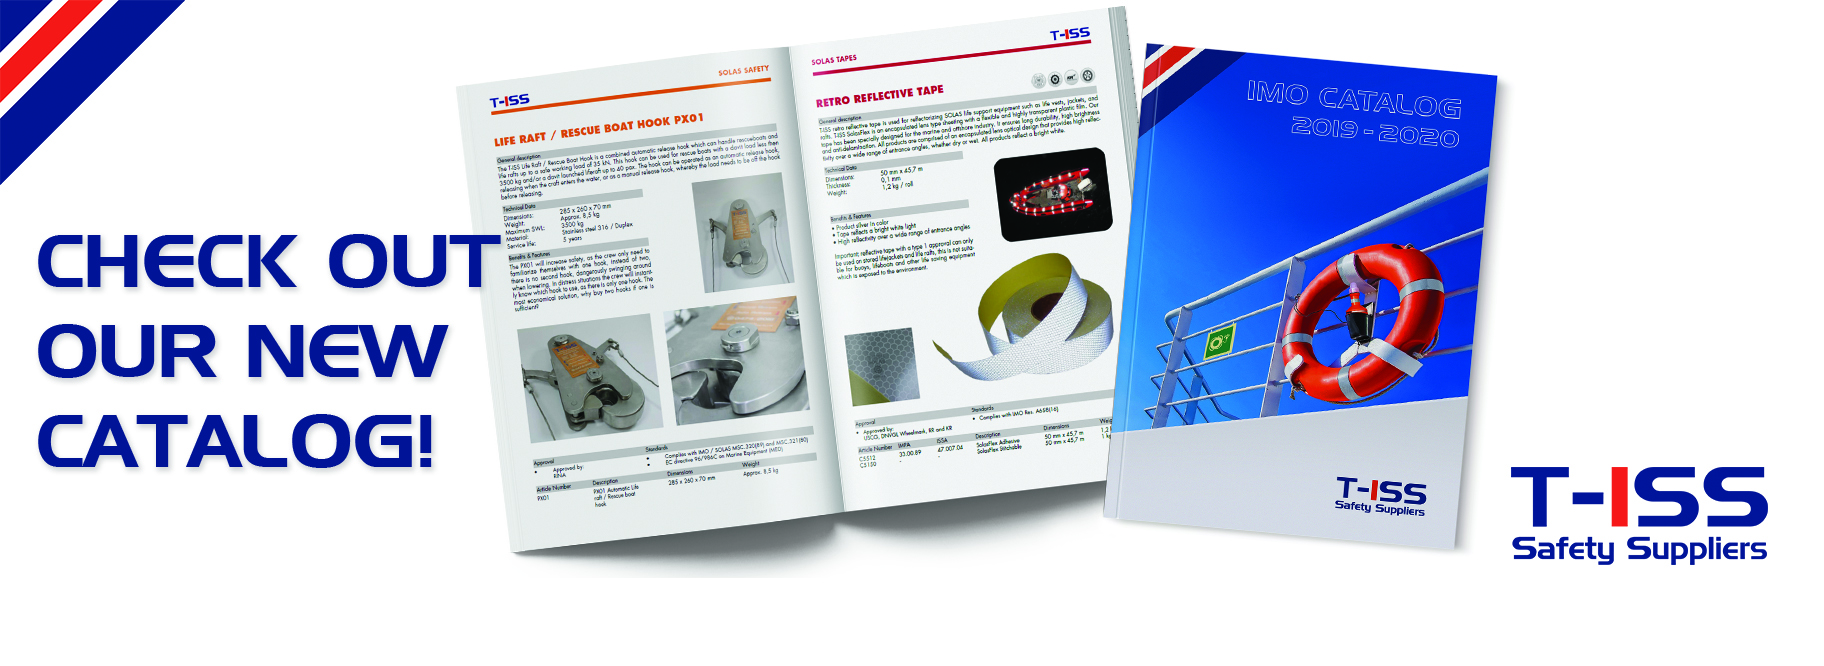 New Catalog 2019-2020 T-ISS Safety Suppliers